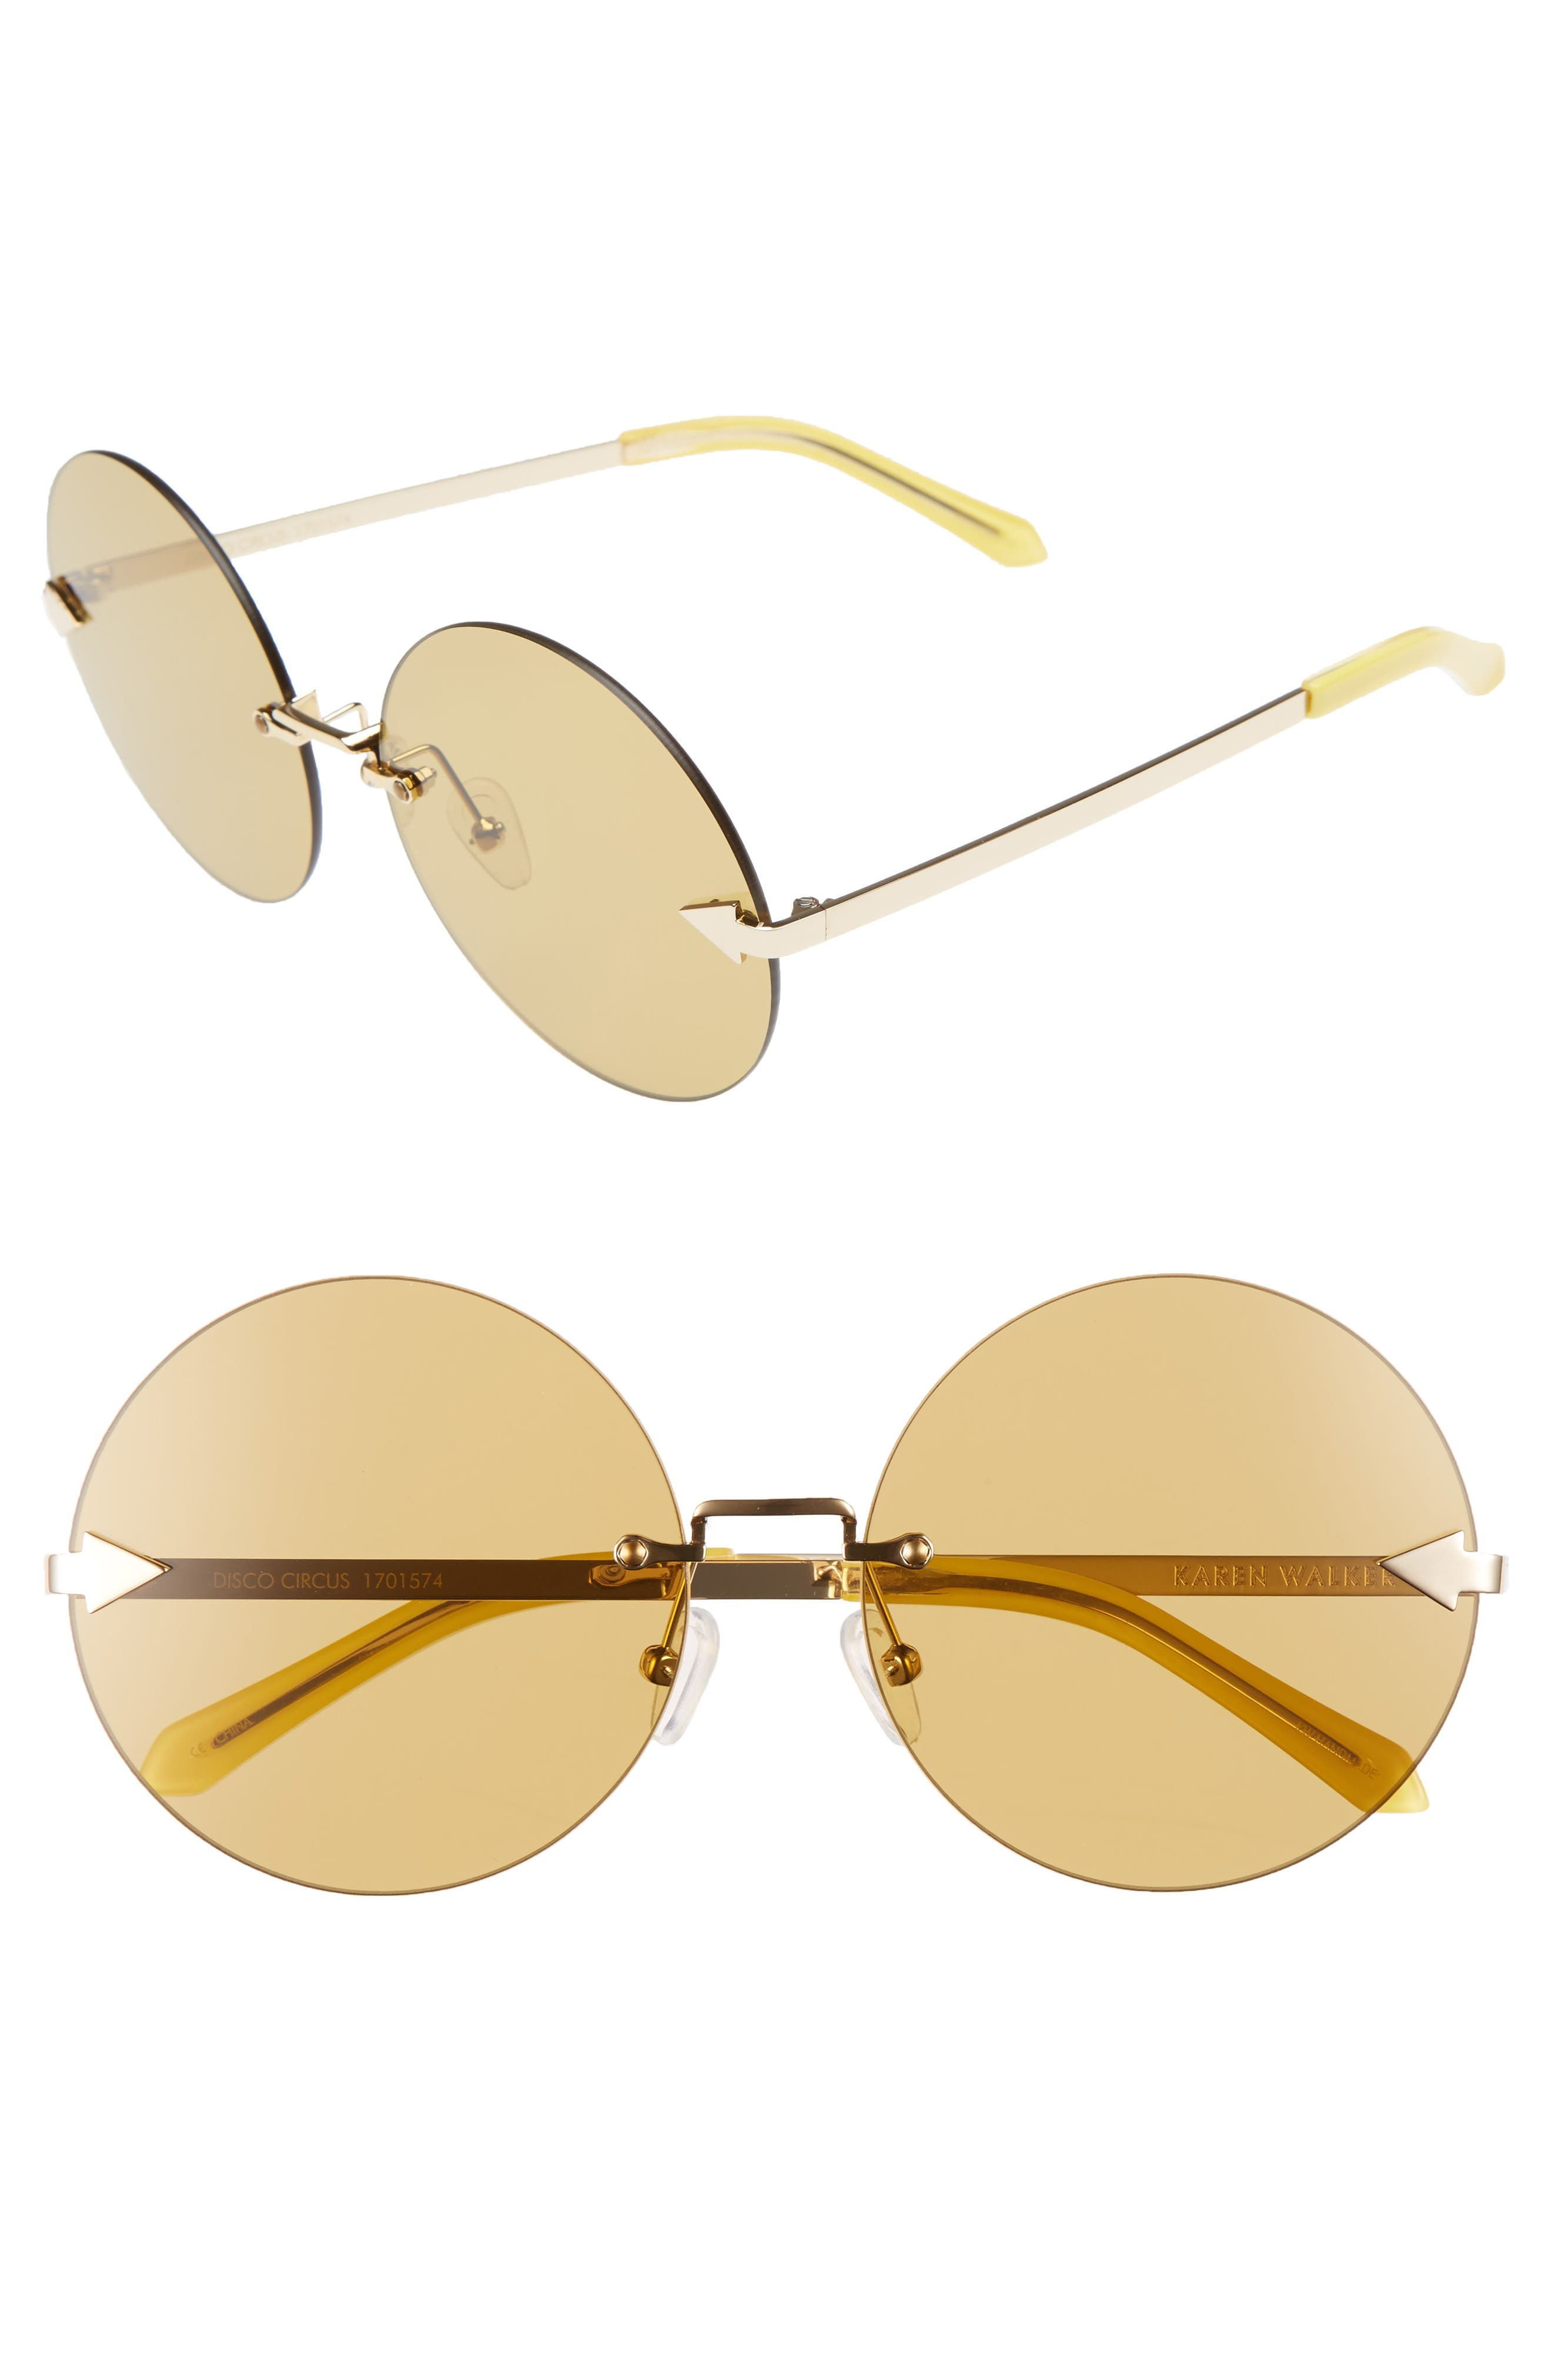 Disco Circus 60mm Rimless Round Sunglasses,                         Main,                         color, Marigold/ Gold